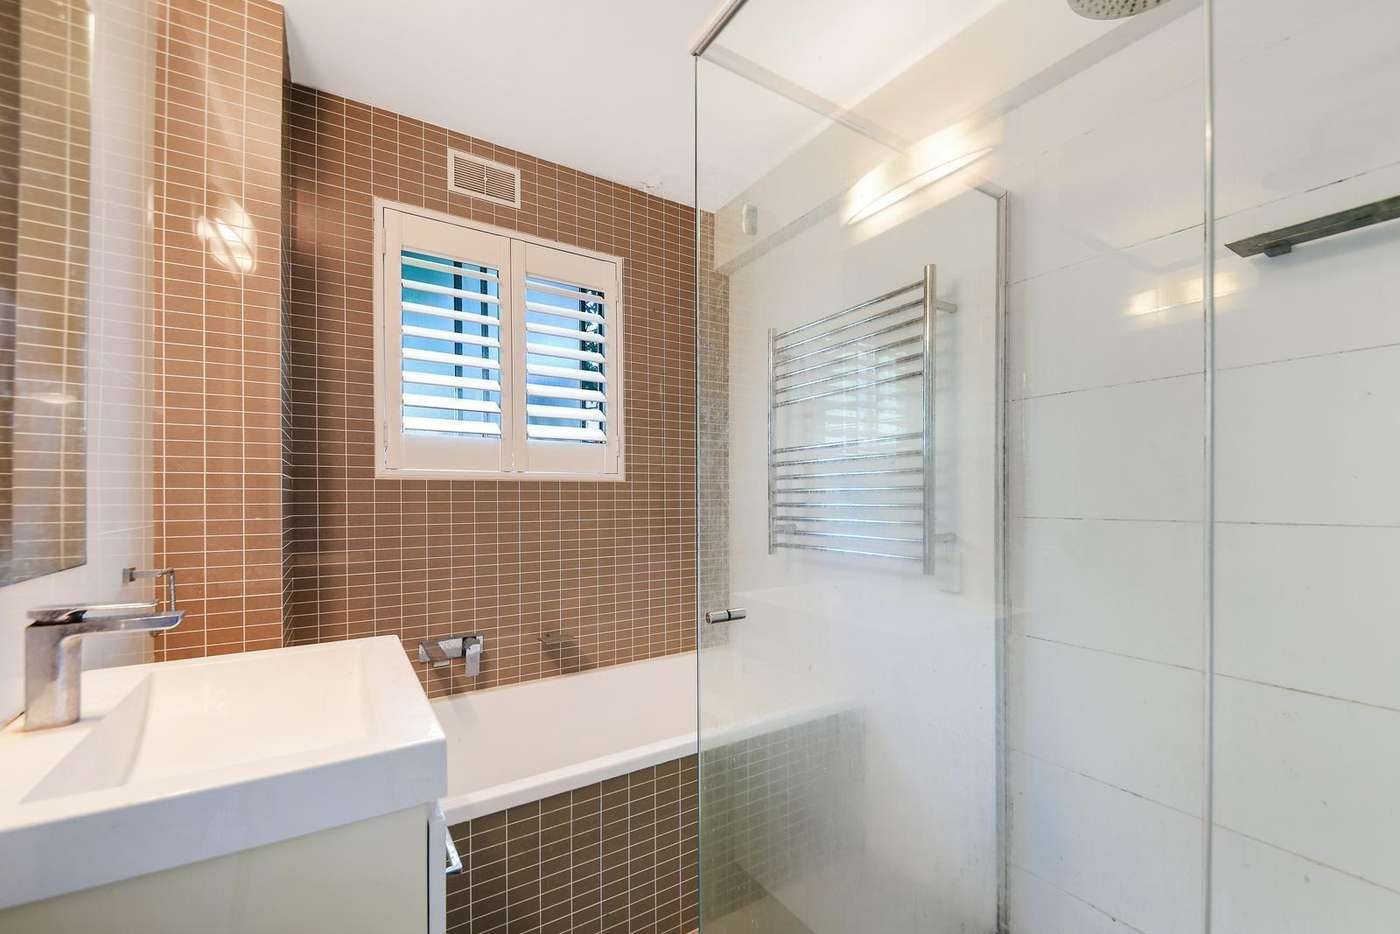 Seventh view of Homely apartment listing, 20/400 Mowbray Road West, Lane Cove North NSW 2066